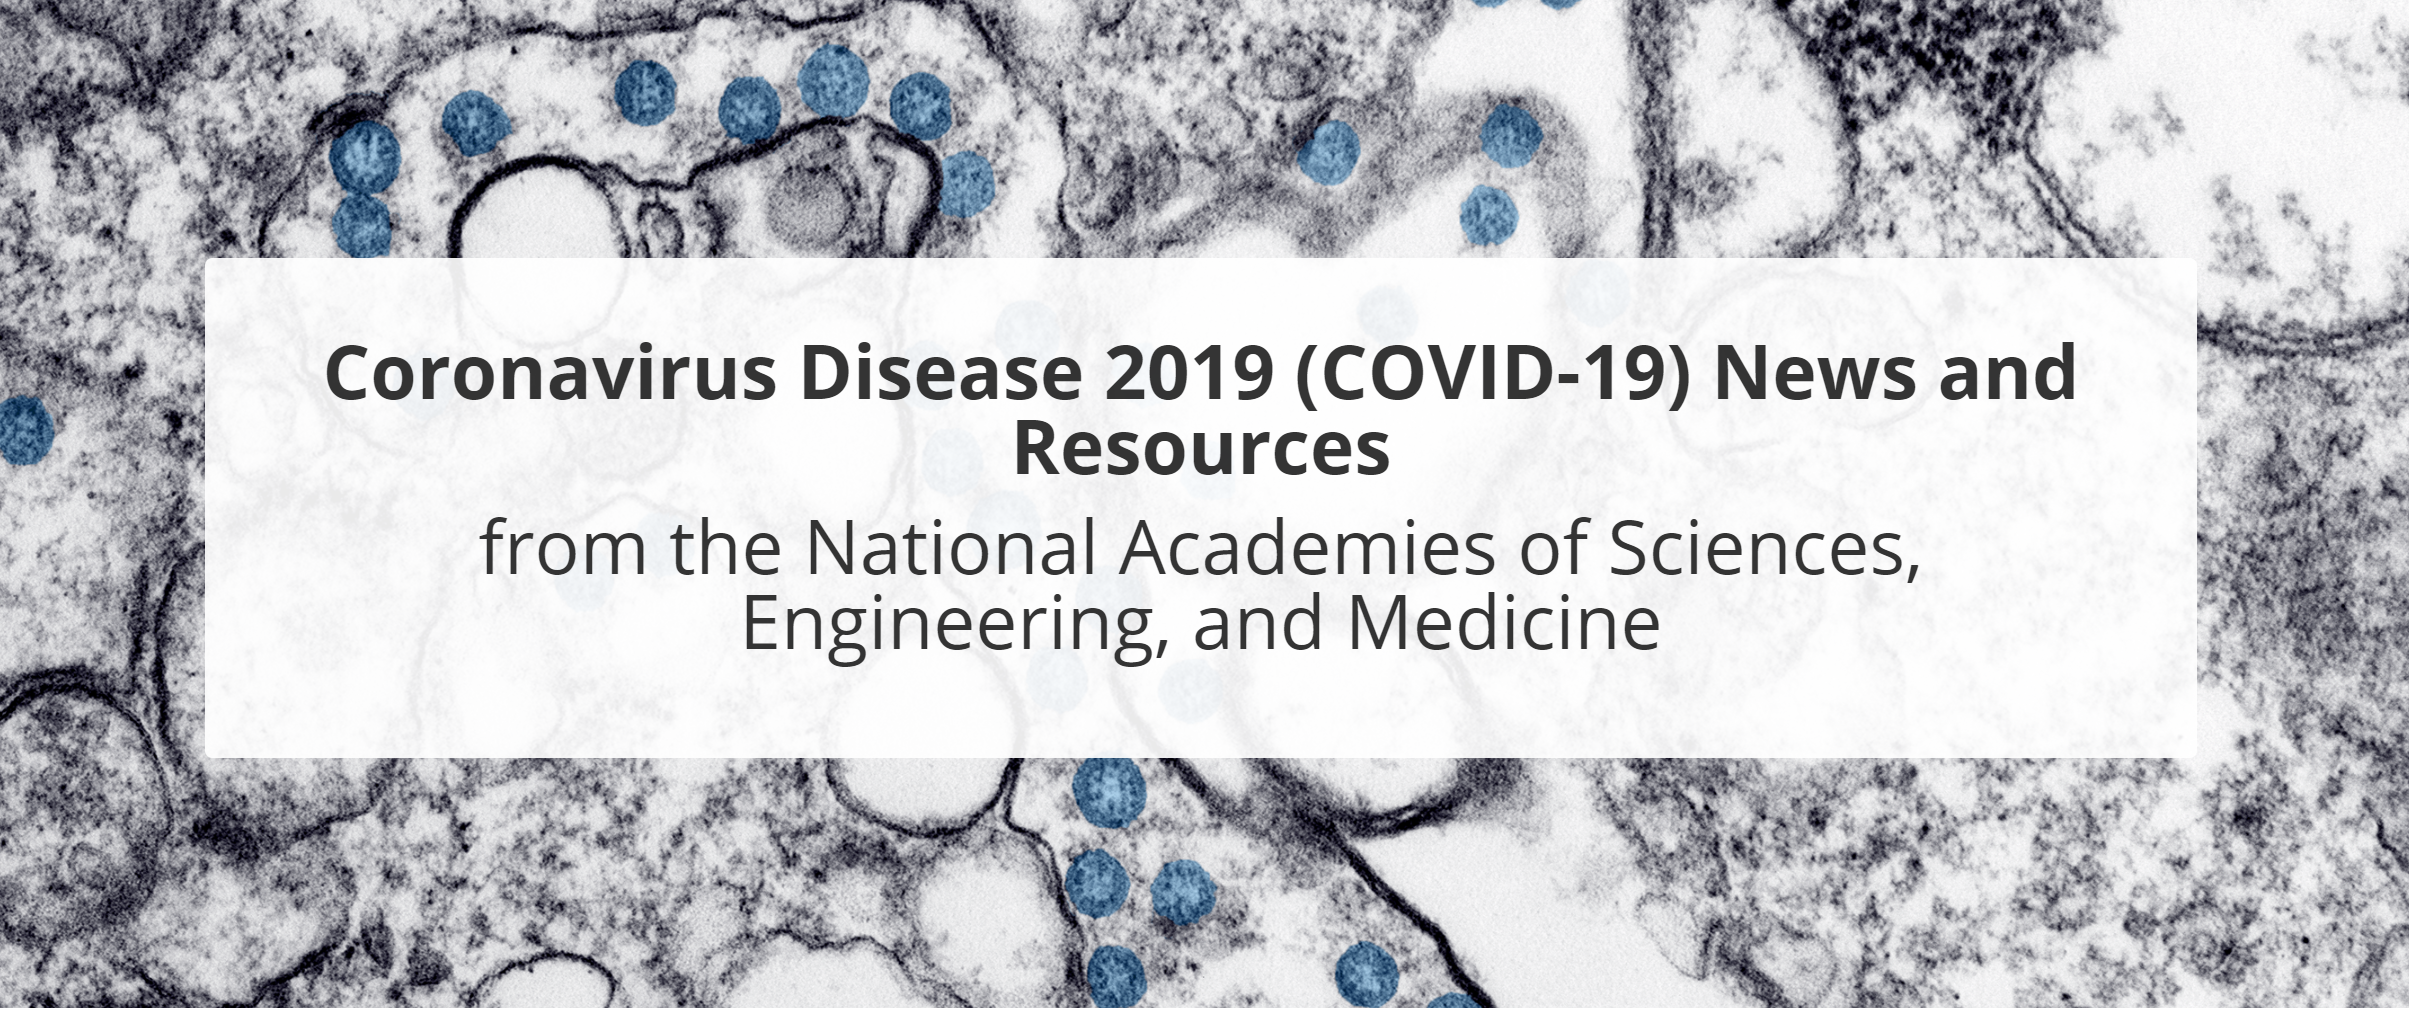 COVID-19 News and Resources